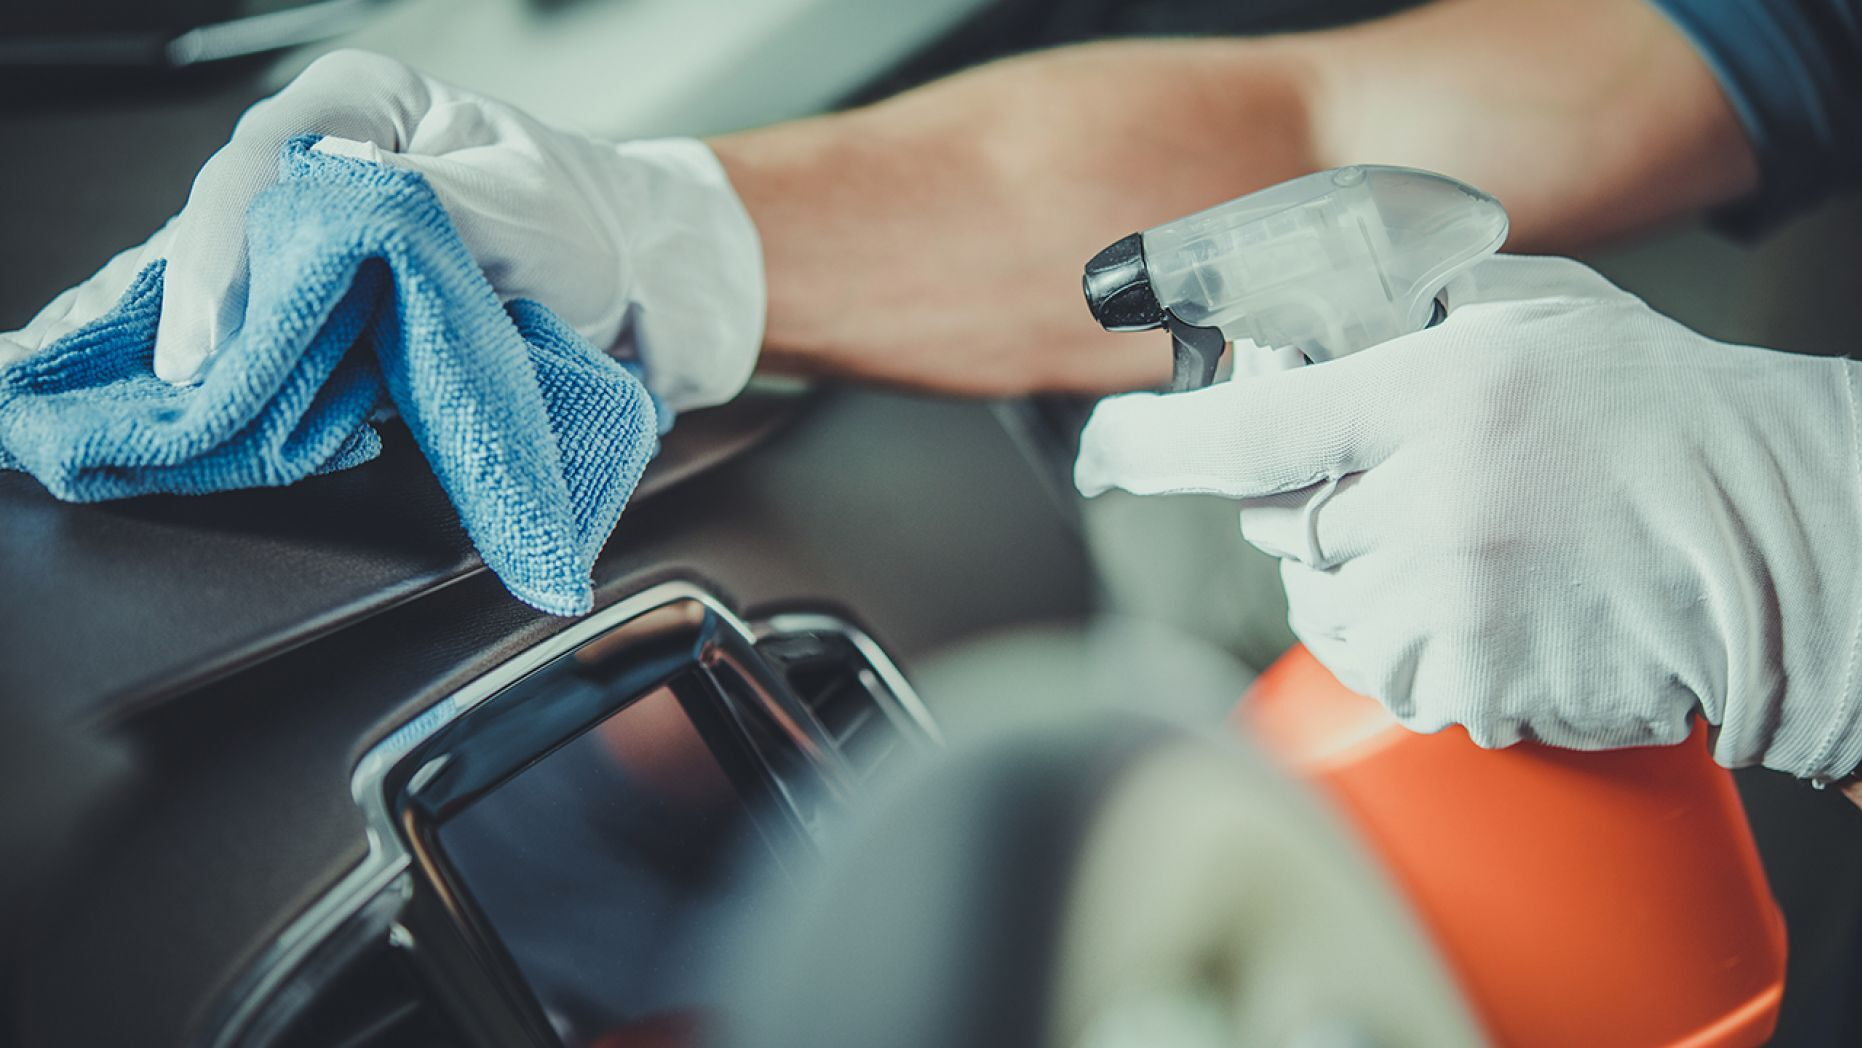 Cleaning car wearing gloves